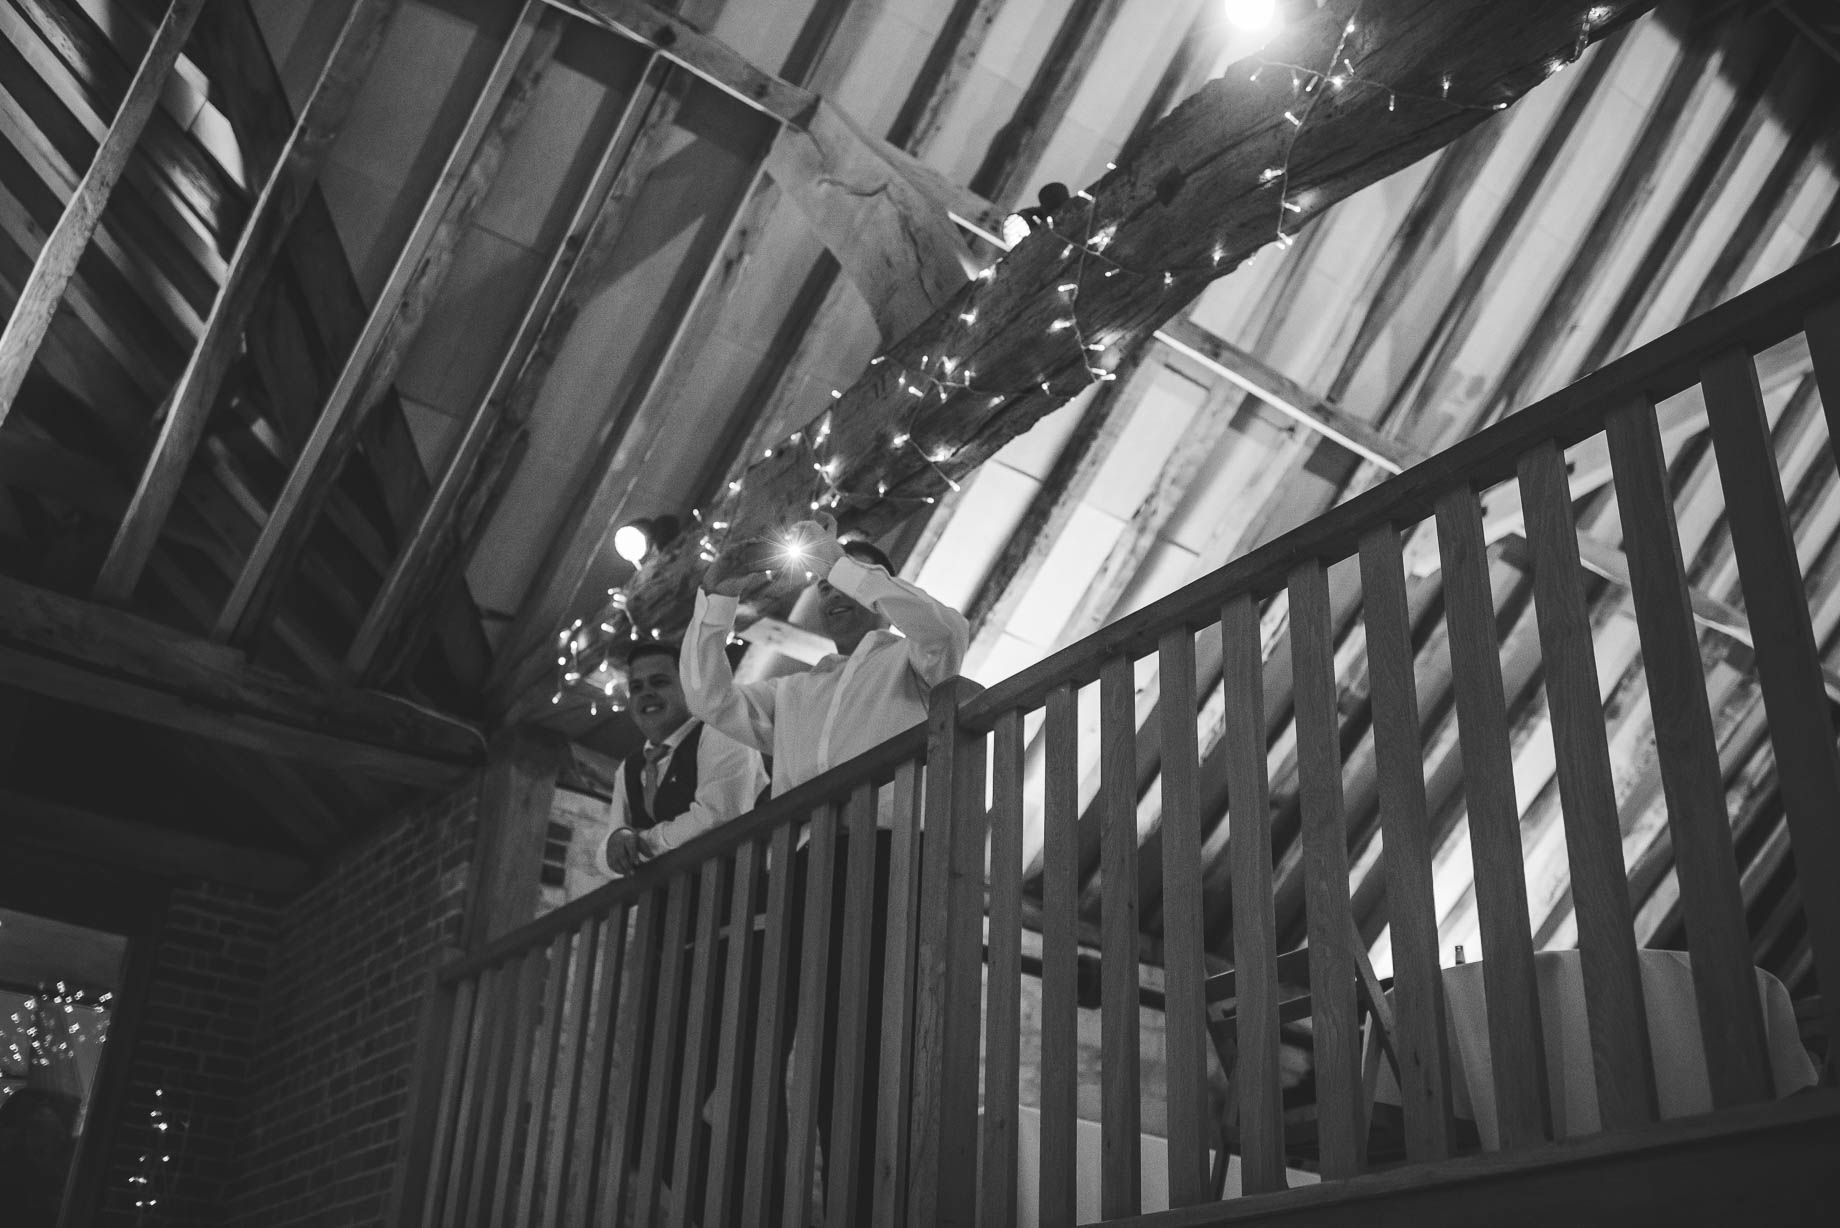 Bury Court Barn wedding photography - Guy Collier - Kirsty and Lewis (140 of 150)